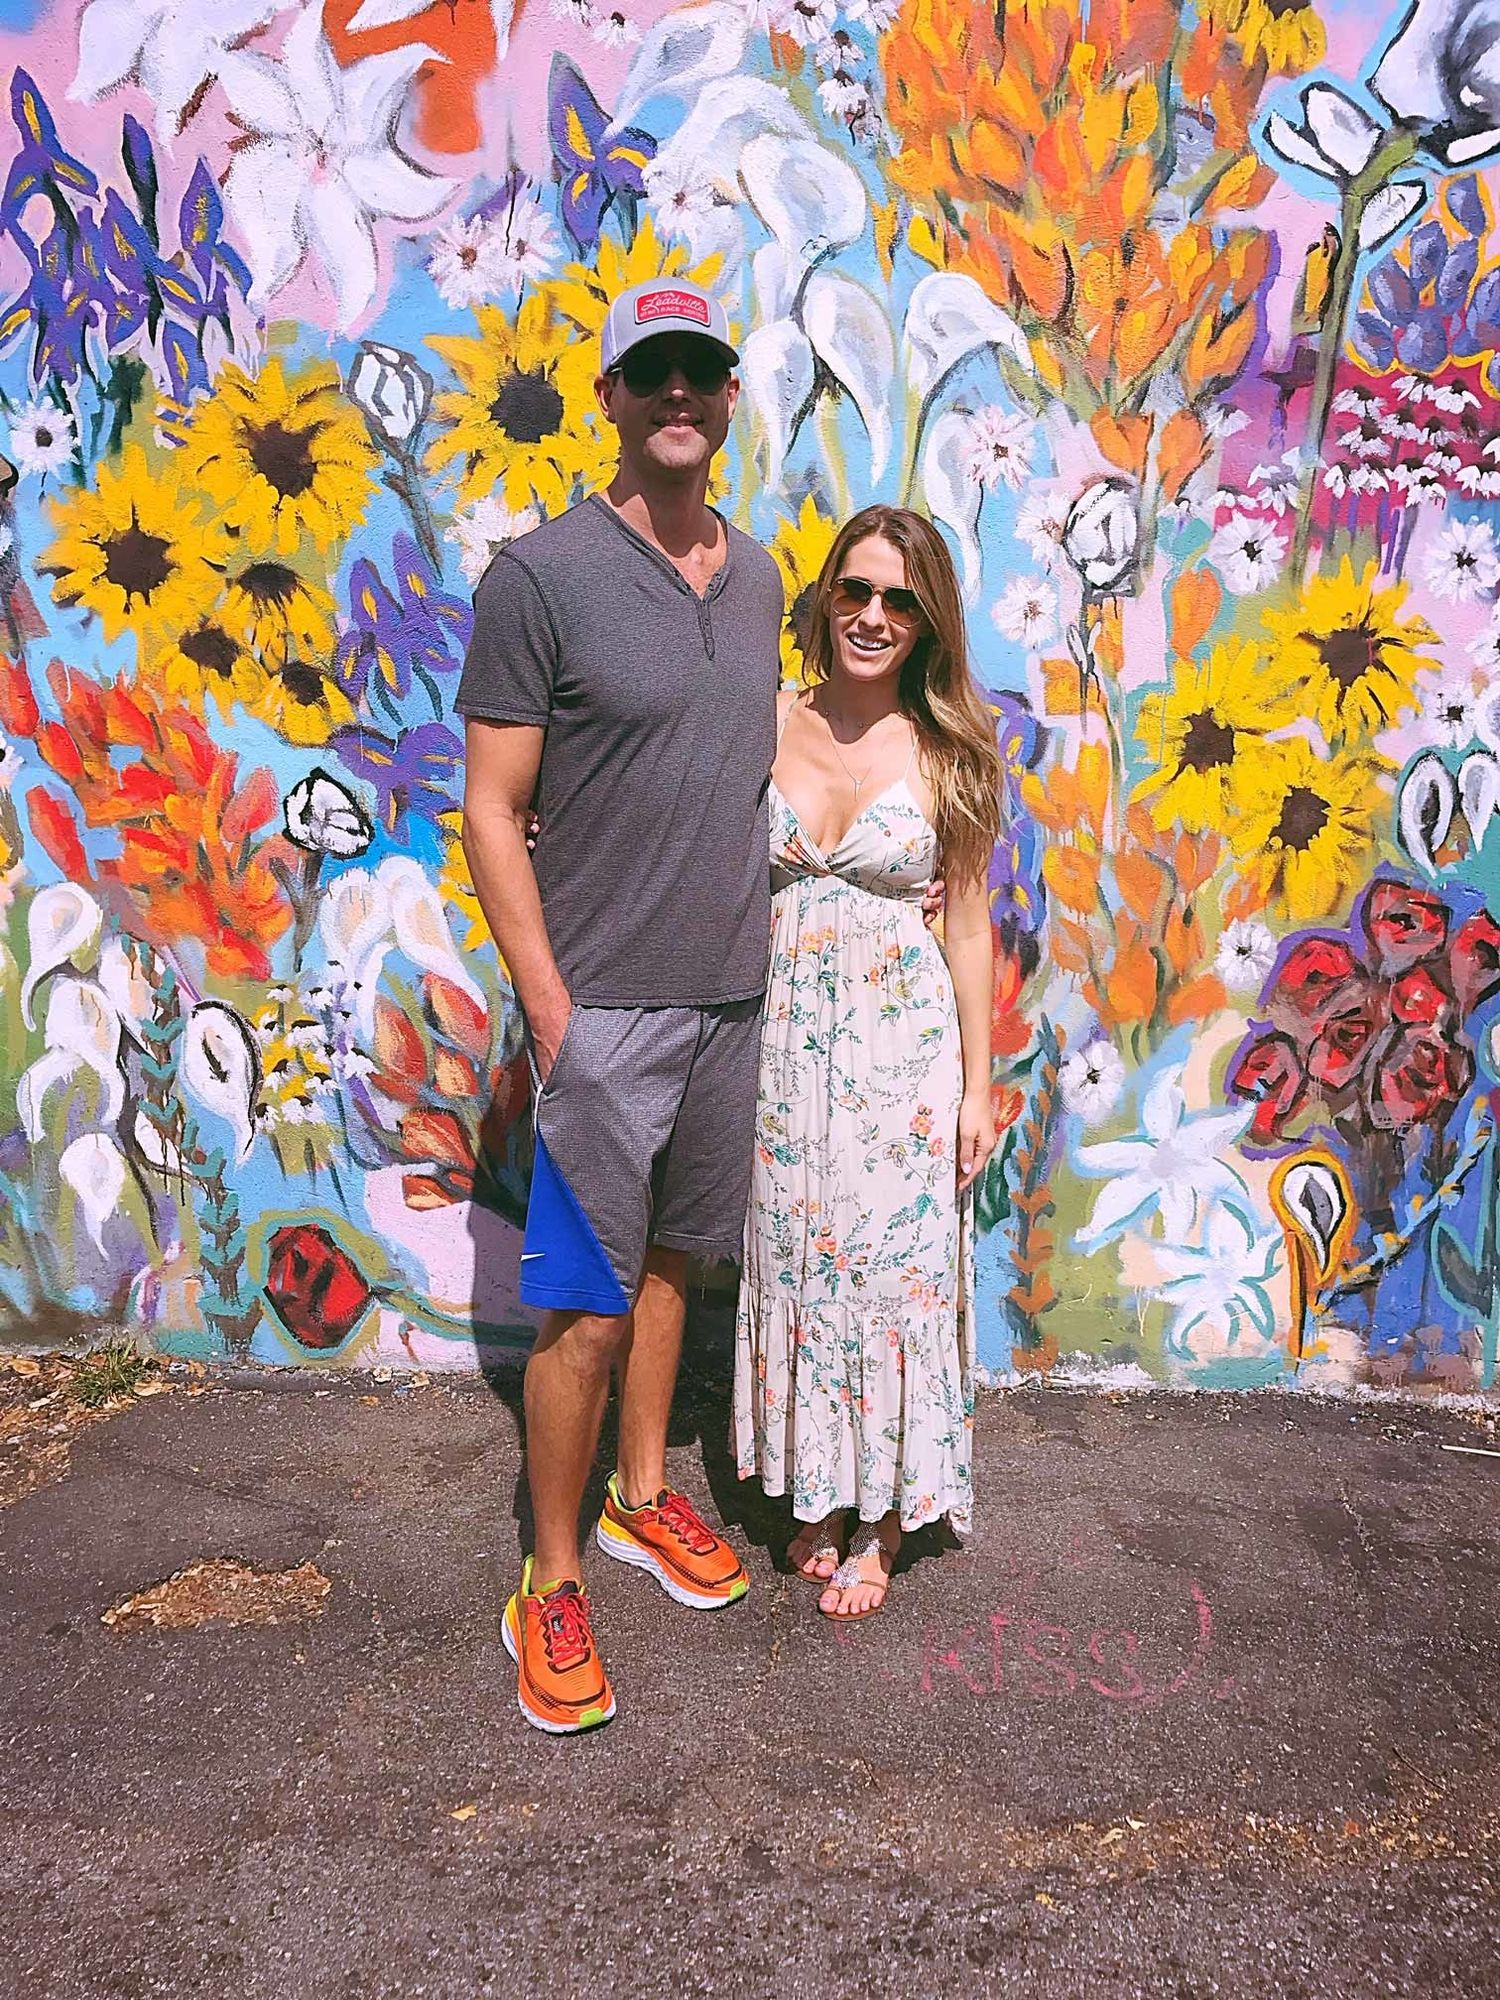 Dr. Travis Stork and his wife in front of a mural in Nashville.